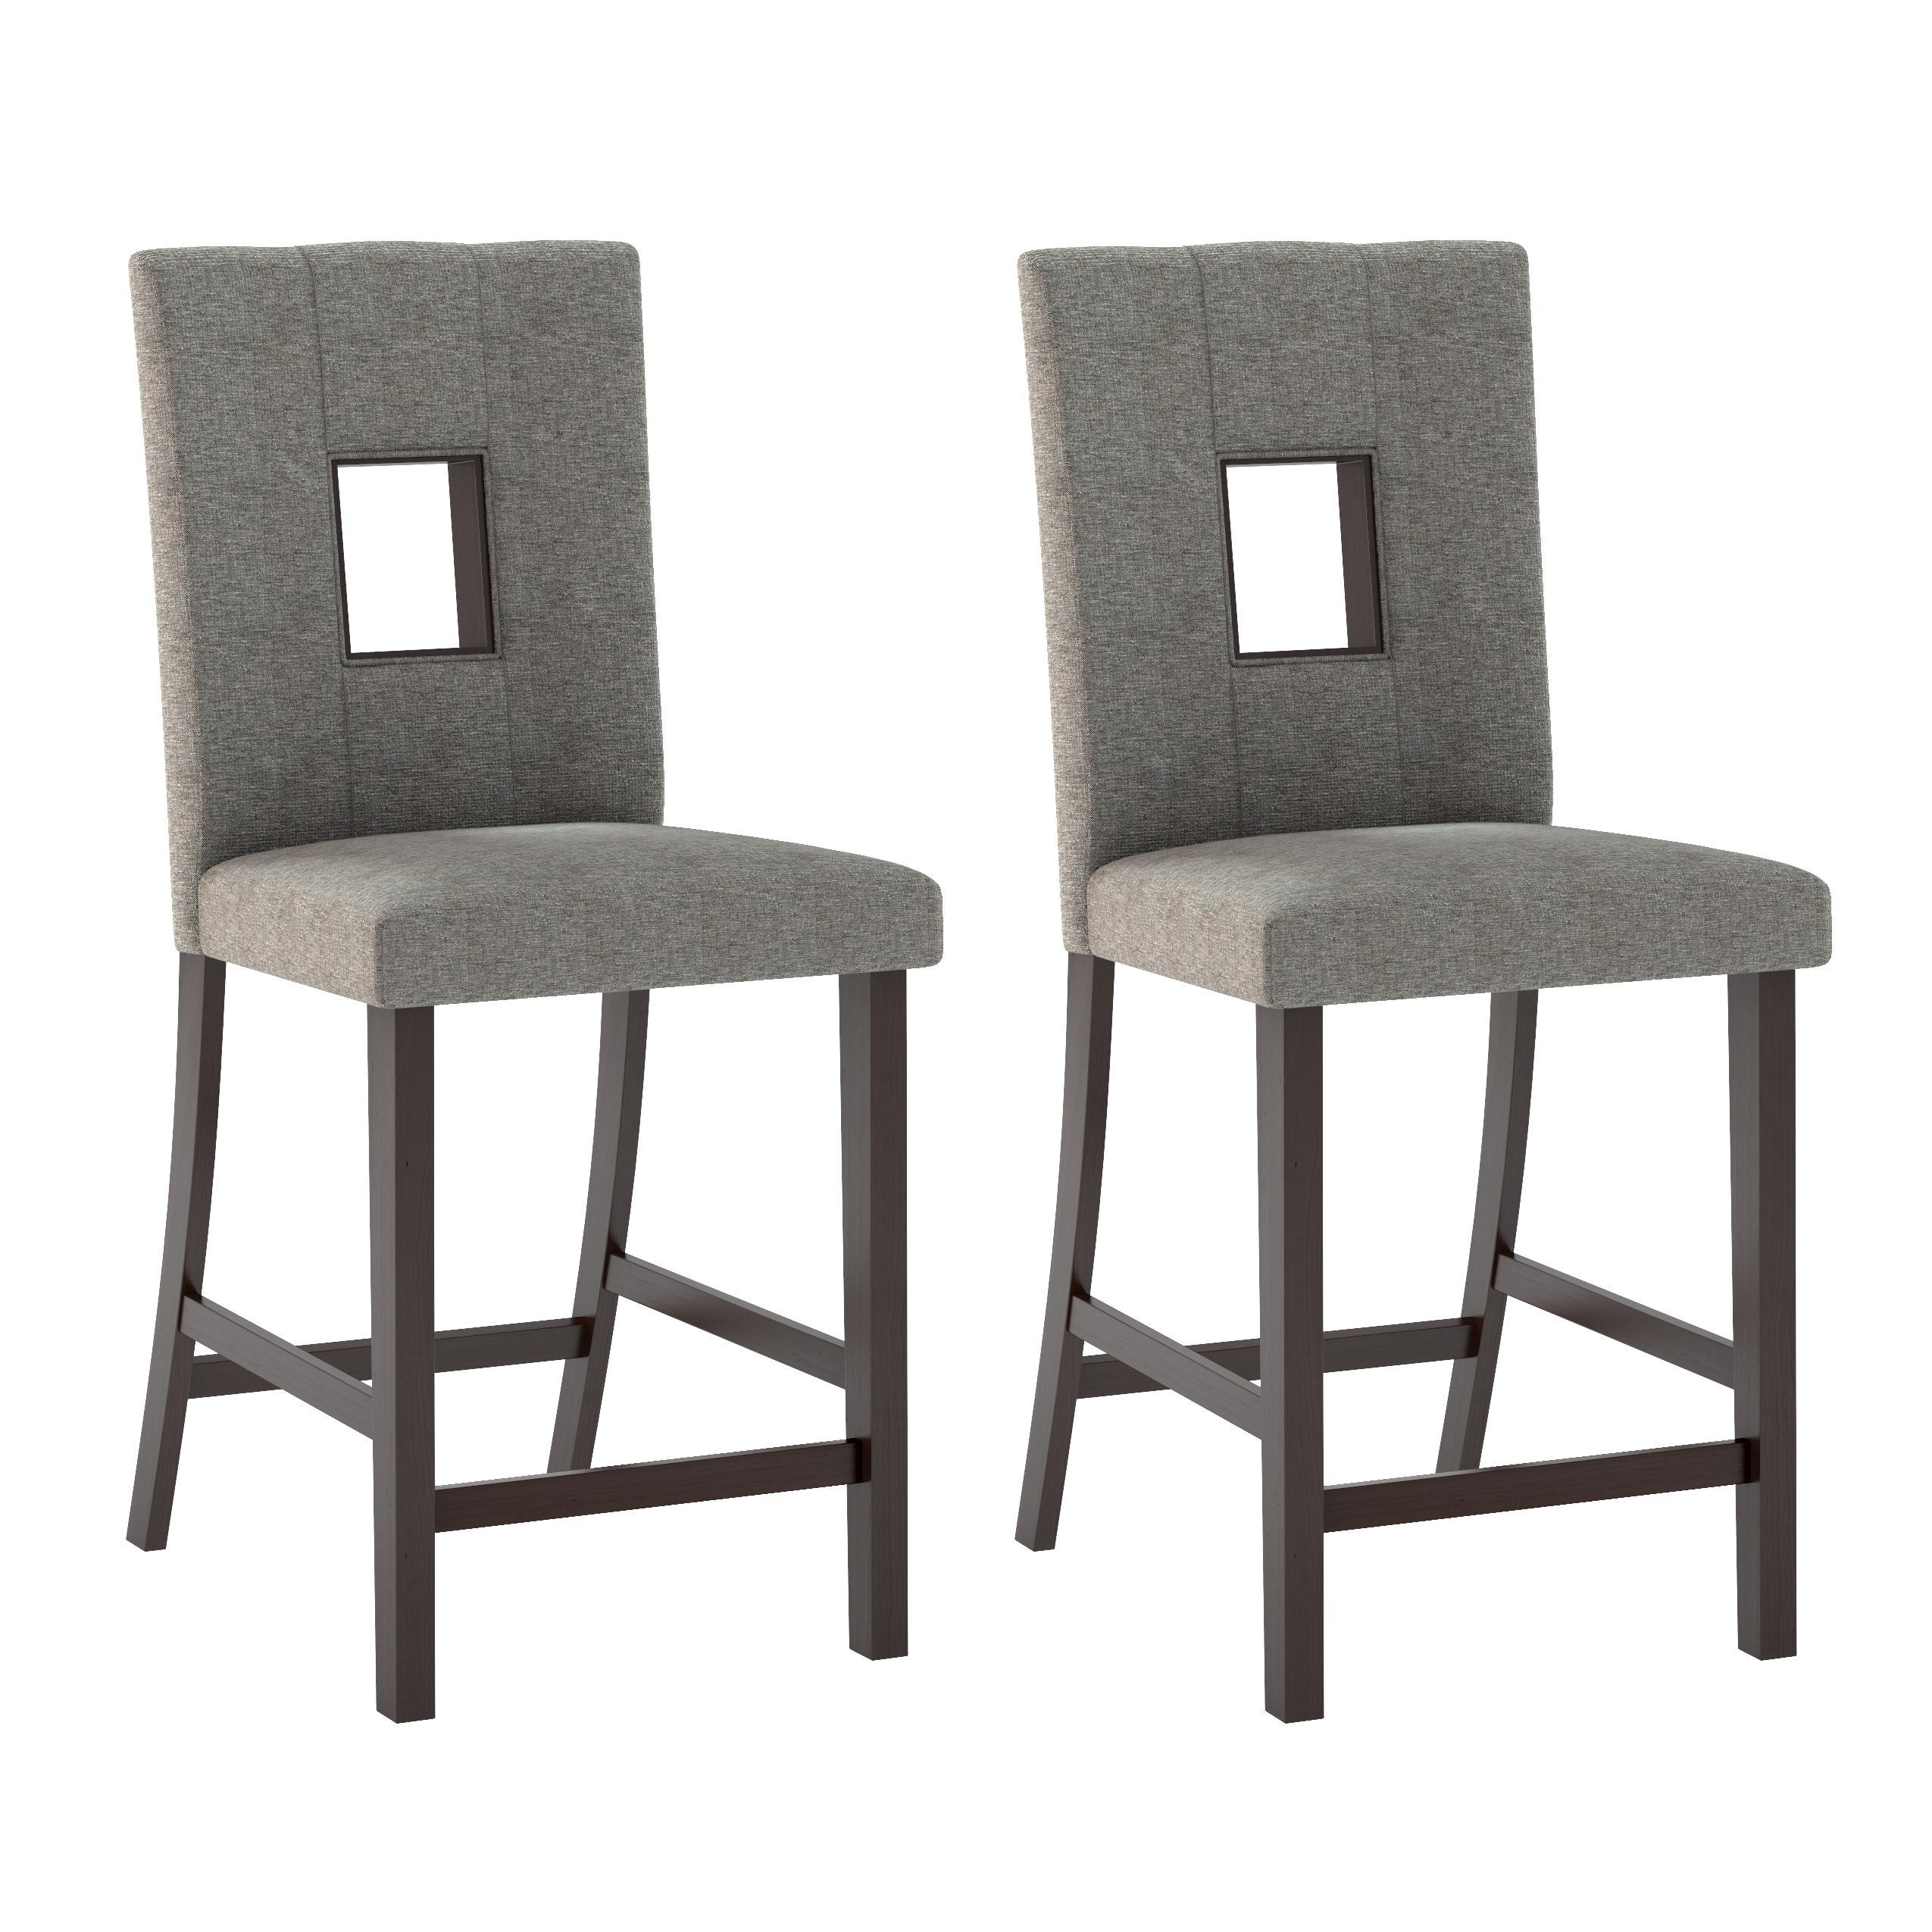 Prime Sand Fabric Counter Height Dining Chairs Set Of 2 Pdpeps Interior Chair Design Pdpepsorg